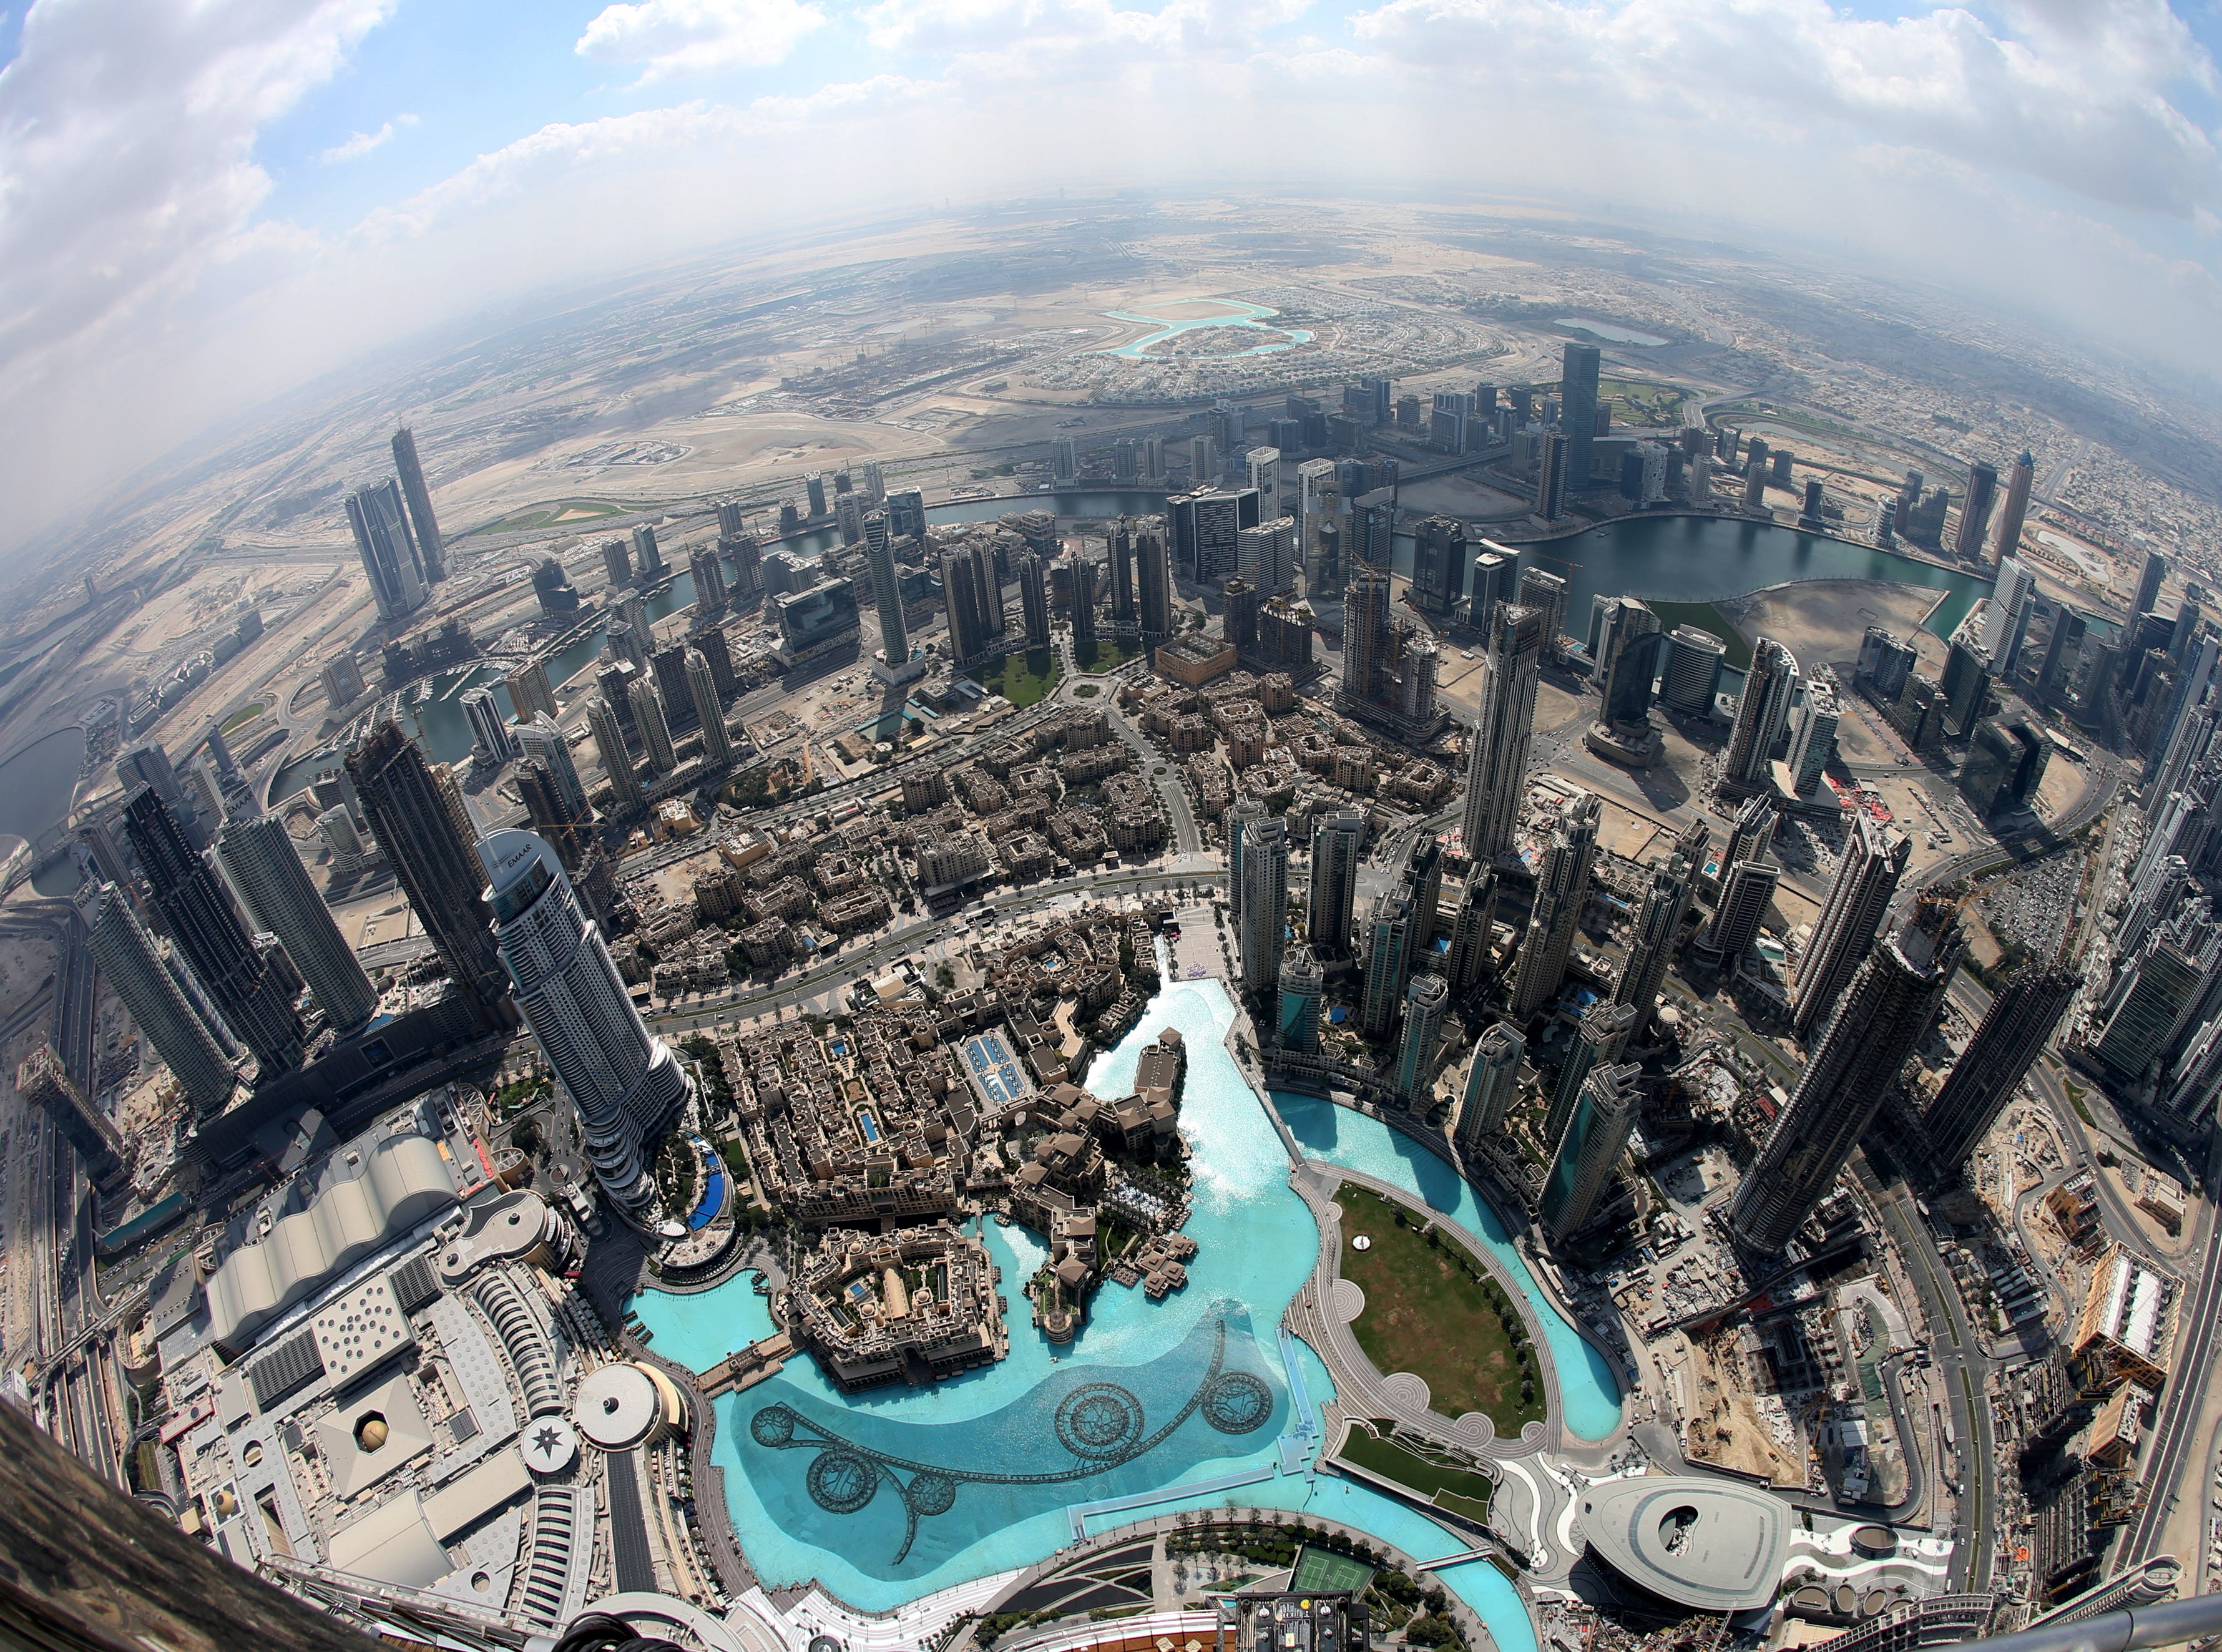 A picture taken with a fisheye lens shows areas close to the world's tallest building, Burj Khalifa, in Dubai, United Arab Emirates, on Feb. 13, 2019.